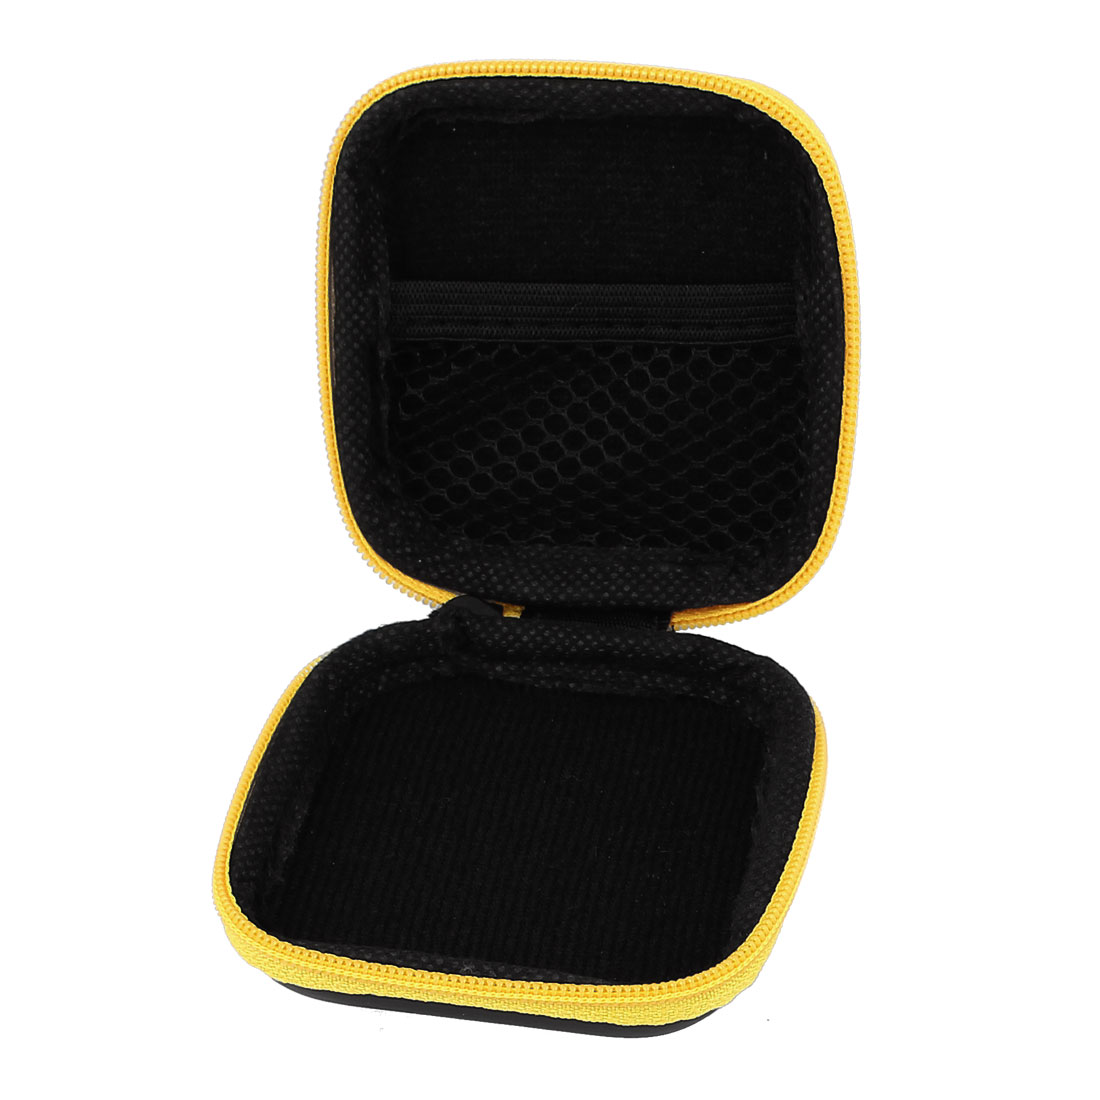 Unique Bargains Earphone Cellphone Headphone Headset Carrying Case Pouch Storage Pocket Yellow